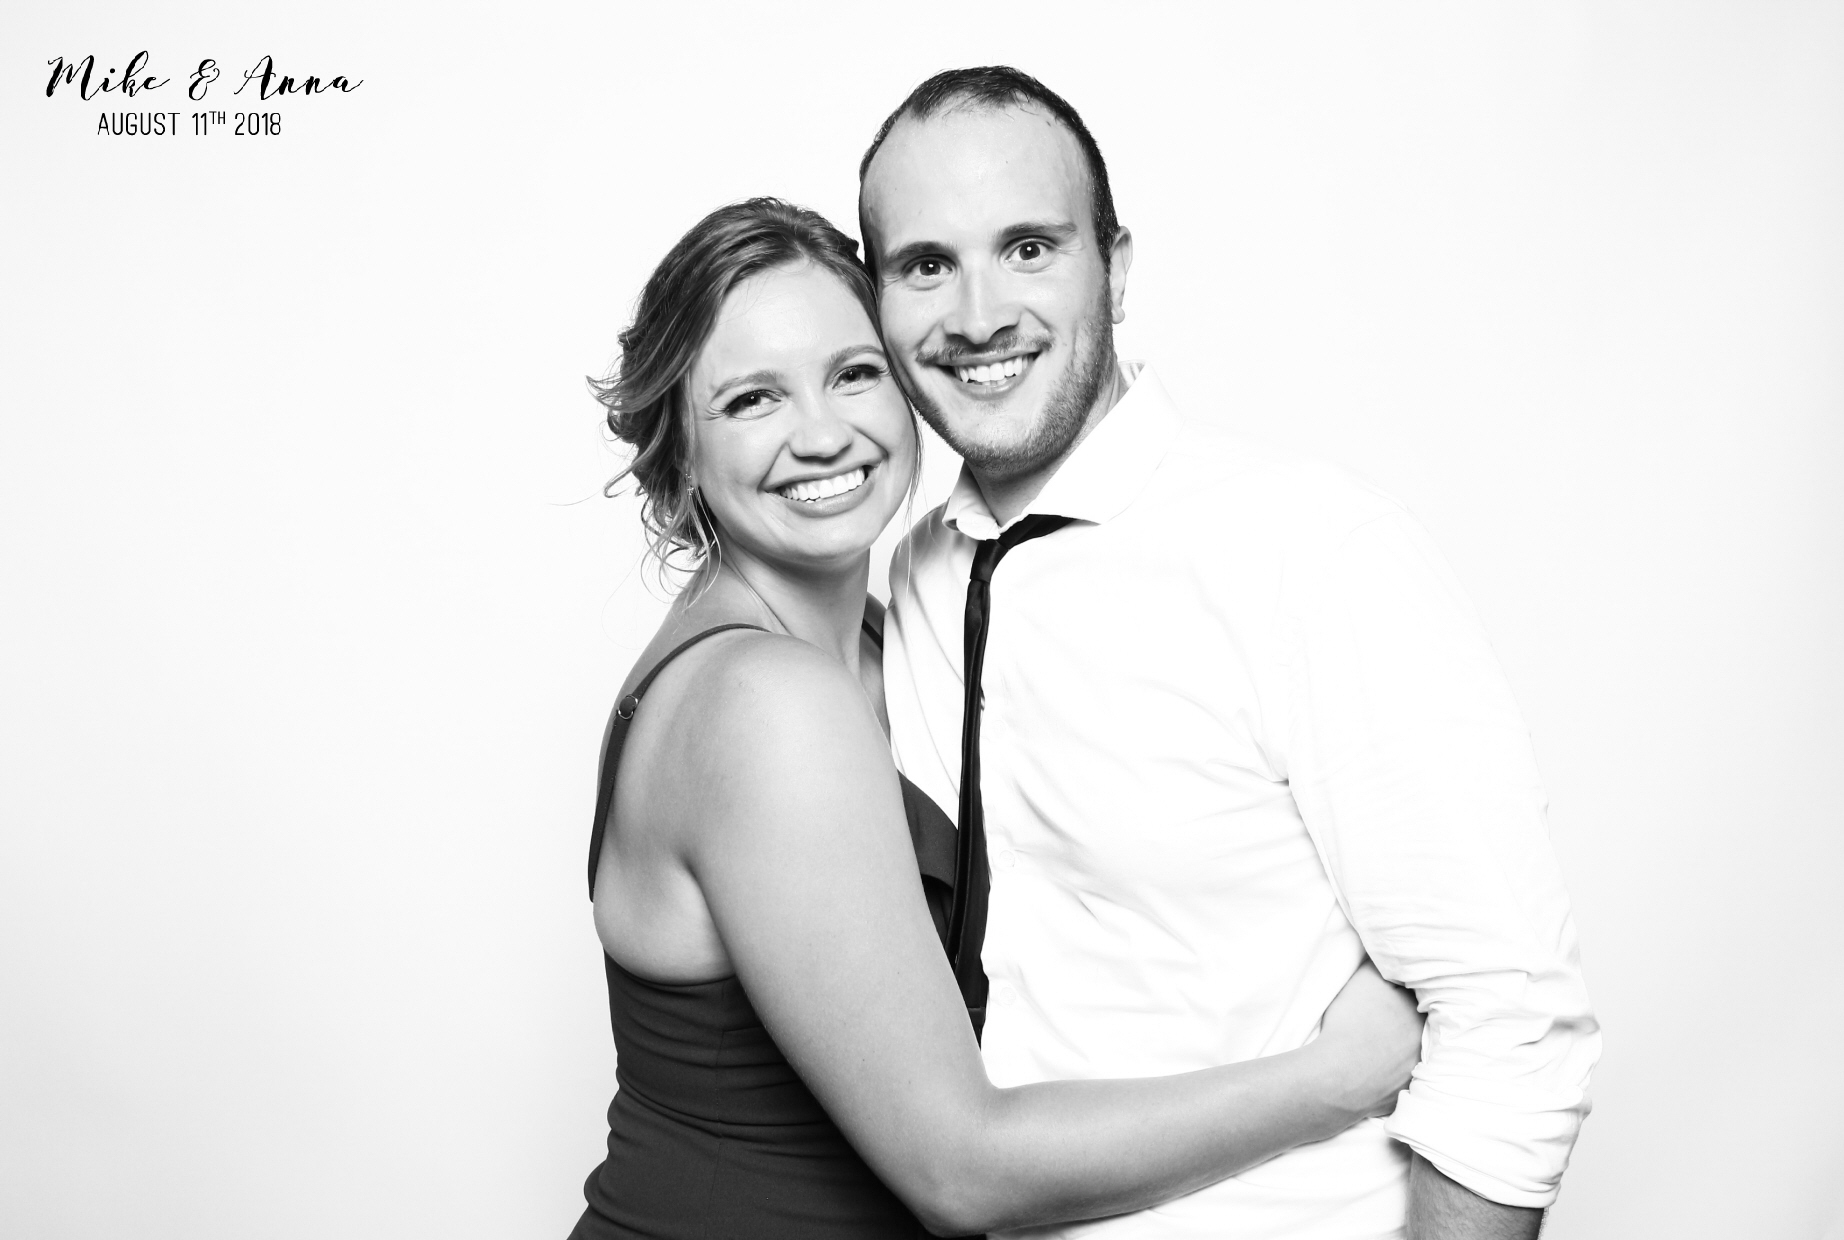 Niagara Black and White Photo Booth